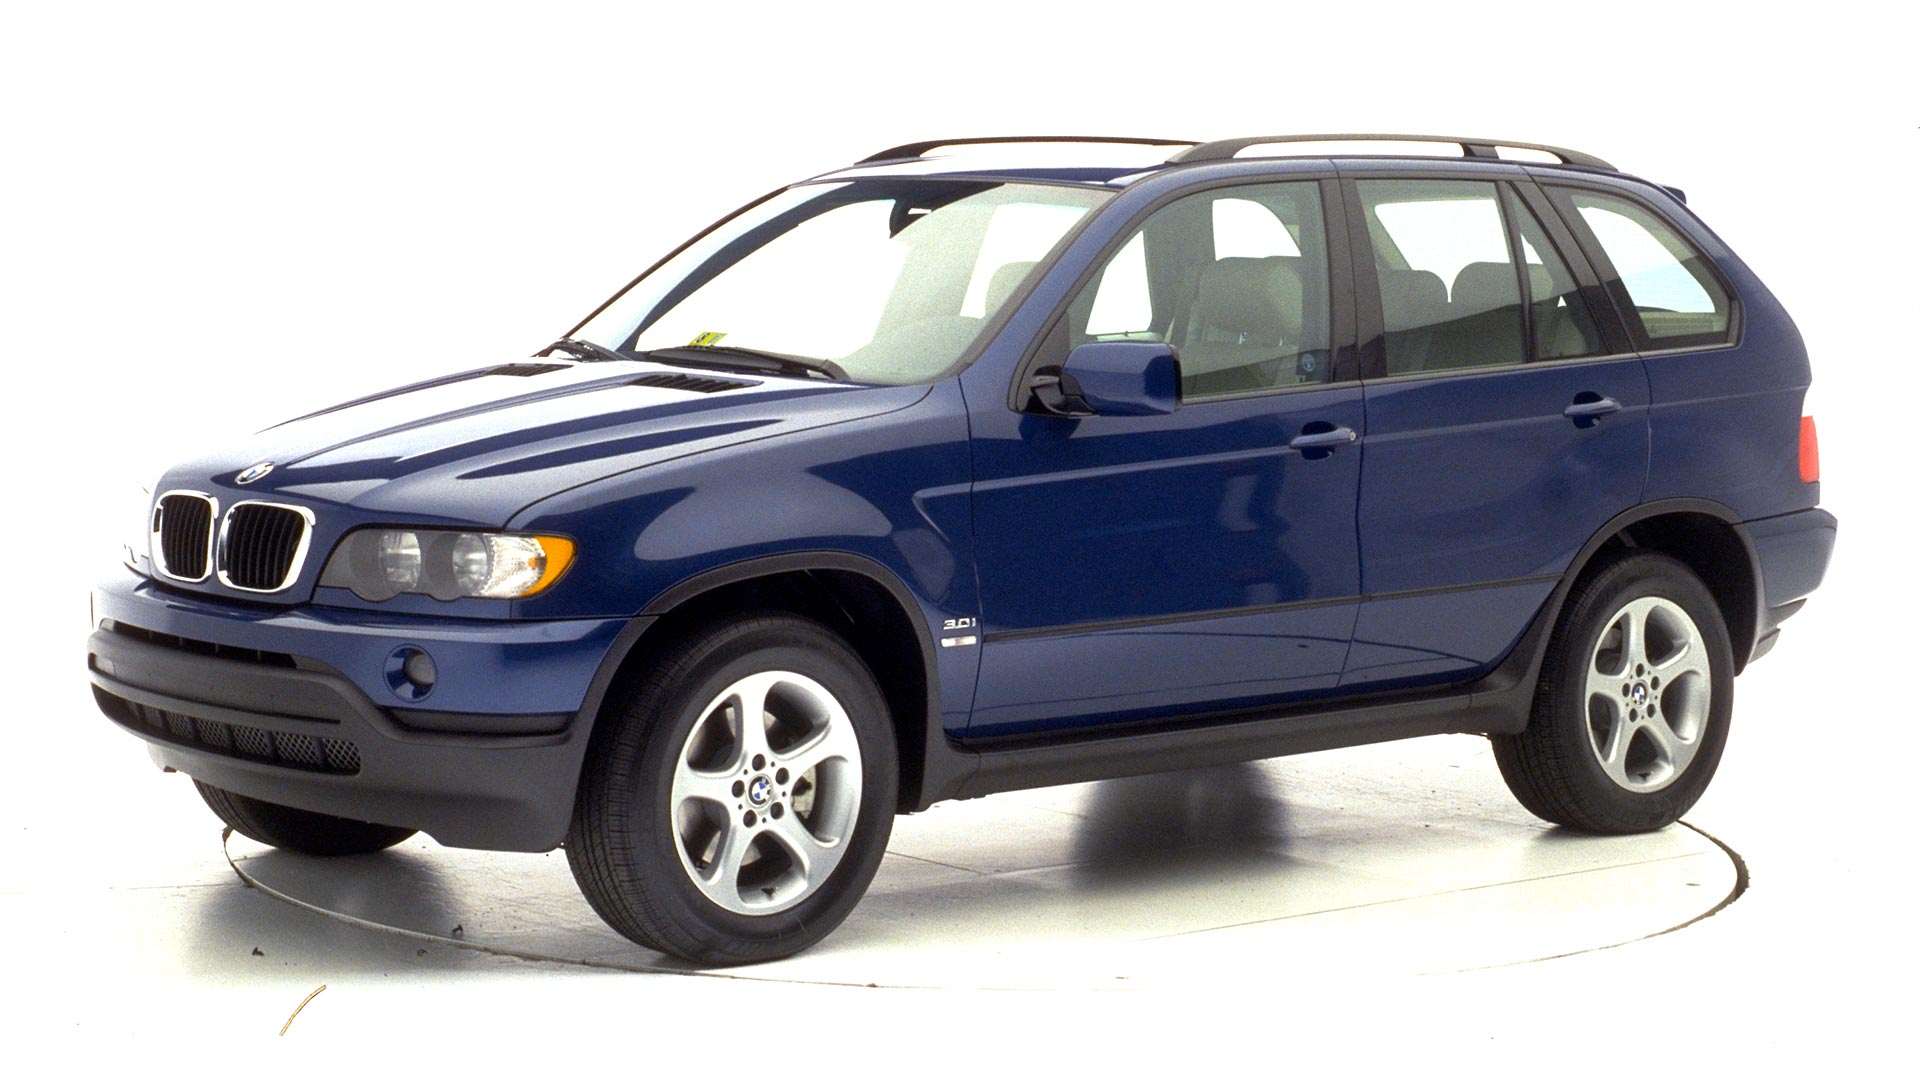 2002 BMW X5 4-door SUV